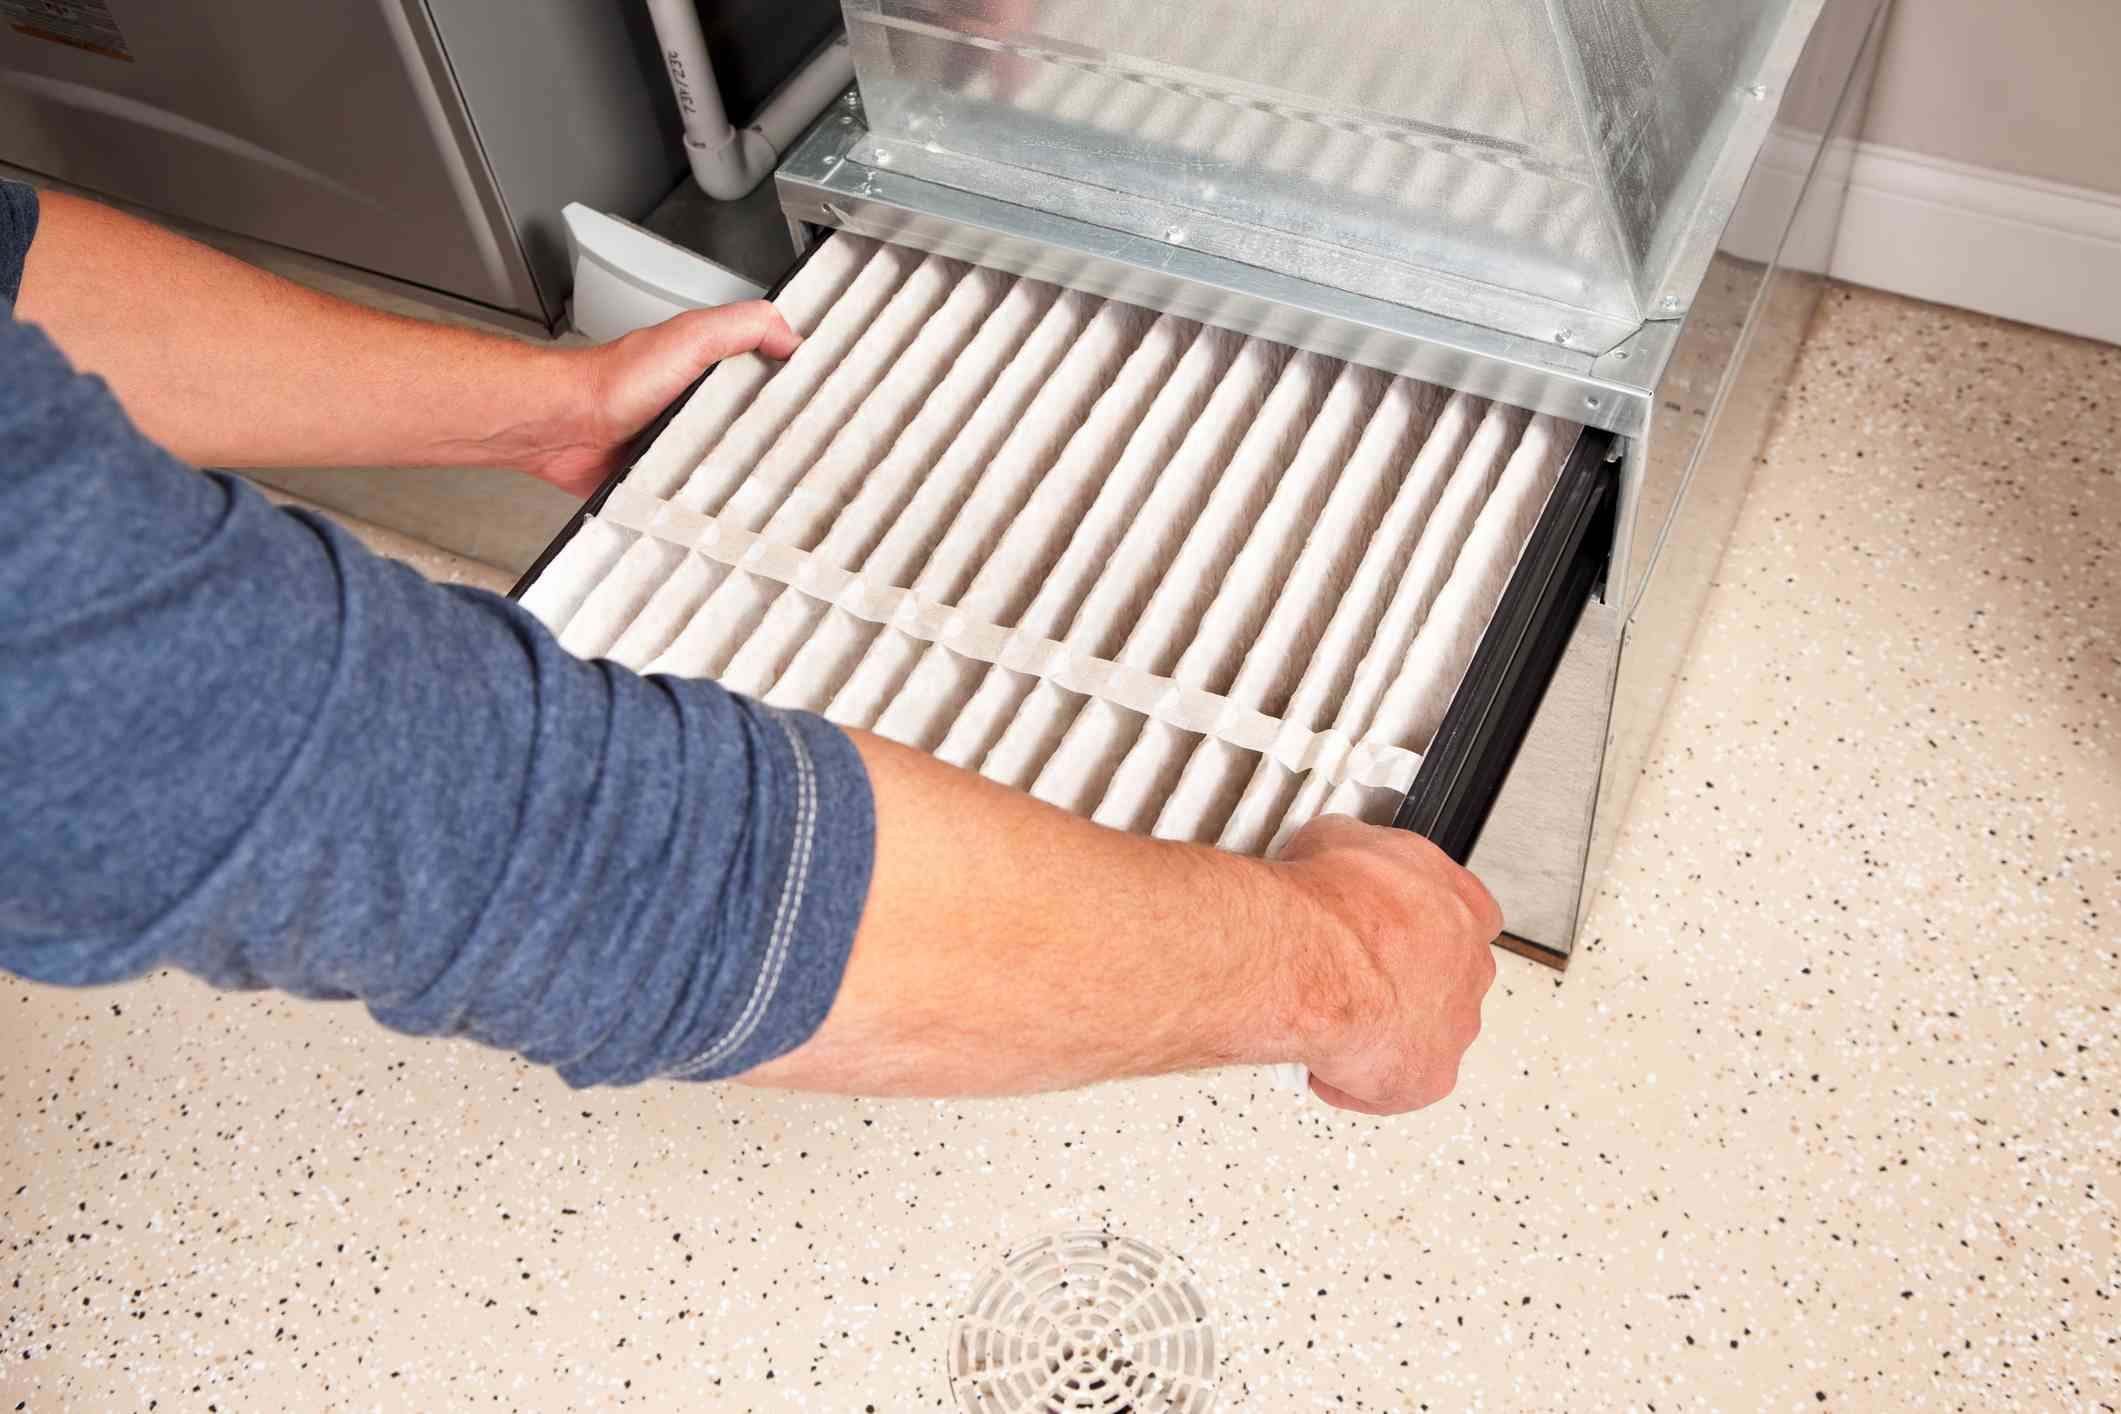 Hands Changing Furnace Air Filter